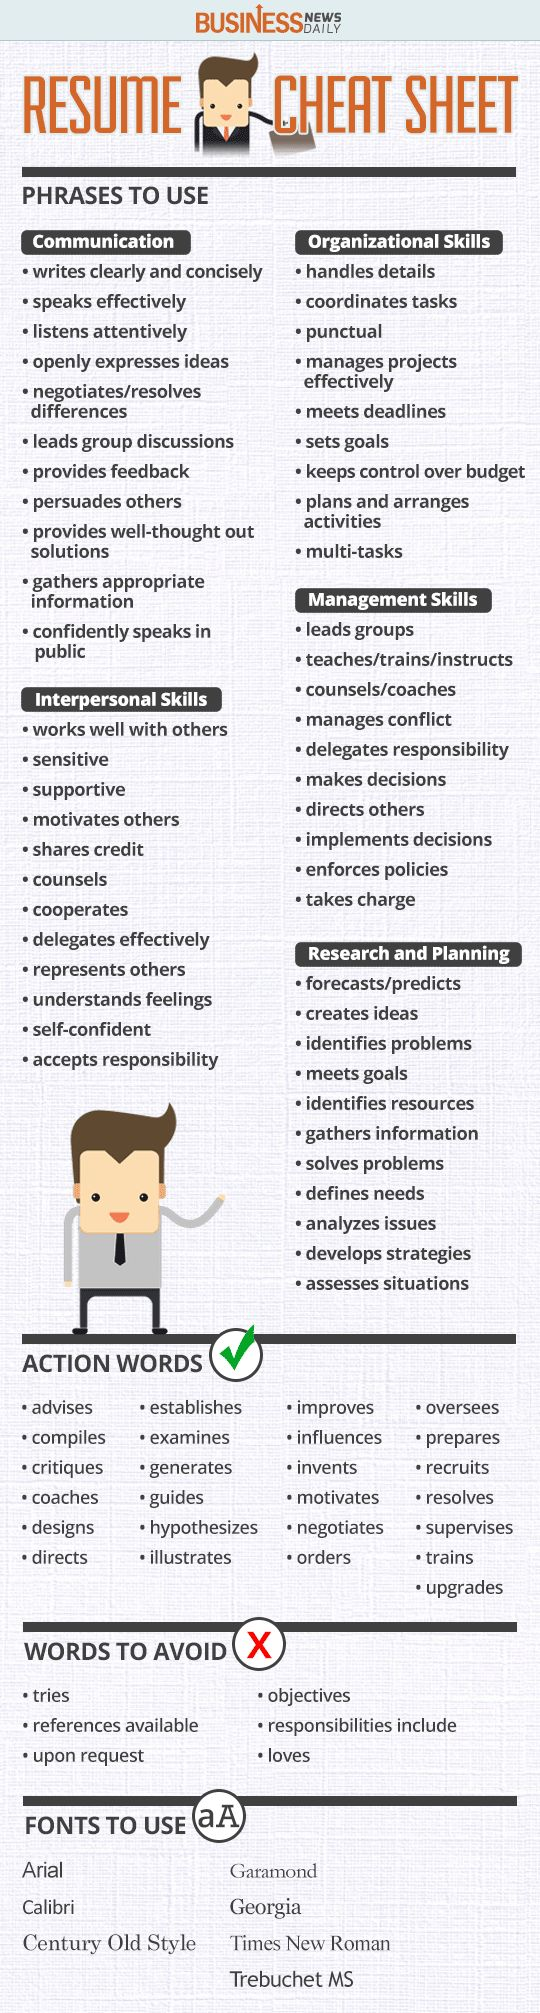 Opposenewapstandardsus  Personable  Ideas About Resume On Pinterest  Cv Format Resume Cv And  With Extraordinary Resume Cheat Sheet Infographic Andrews Almost Done With A Complete Unit On Employment Which With Delightful Personal Skills Resume Also Careerbuilder Resume Search In Addition Merchandising Resume And Resume For Someone With No Work Experience As Well As Online Resume Website Additionally How To Make Resume Free From Pinterestcom With Opposenewapstandardsus  Extraordinary  Ideas About Resume On Pinterest  Cv Format Resume Cv And  With Delightful Resume Cheat Sheet Infographic Andrews Almost Done With A Complete Unit On Employment Which And Personable Personal Skills Resume Also Careerbuilder Resume Search In Addition Merchandising Resume From Pinterestcom